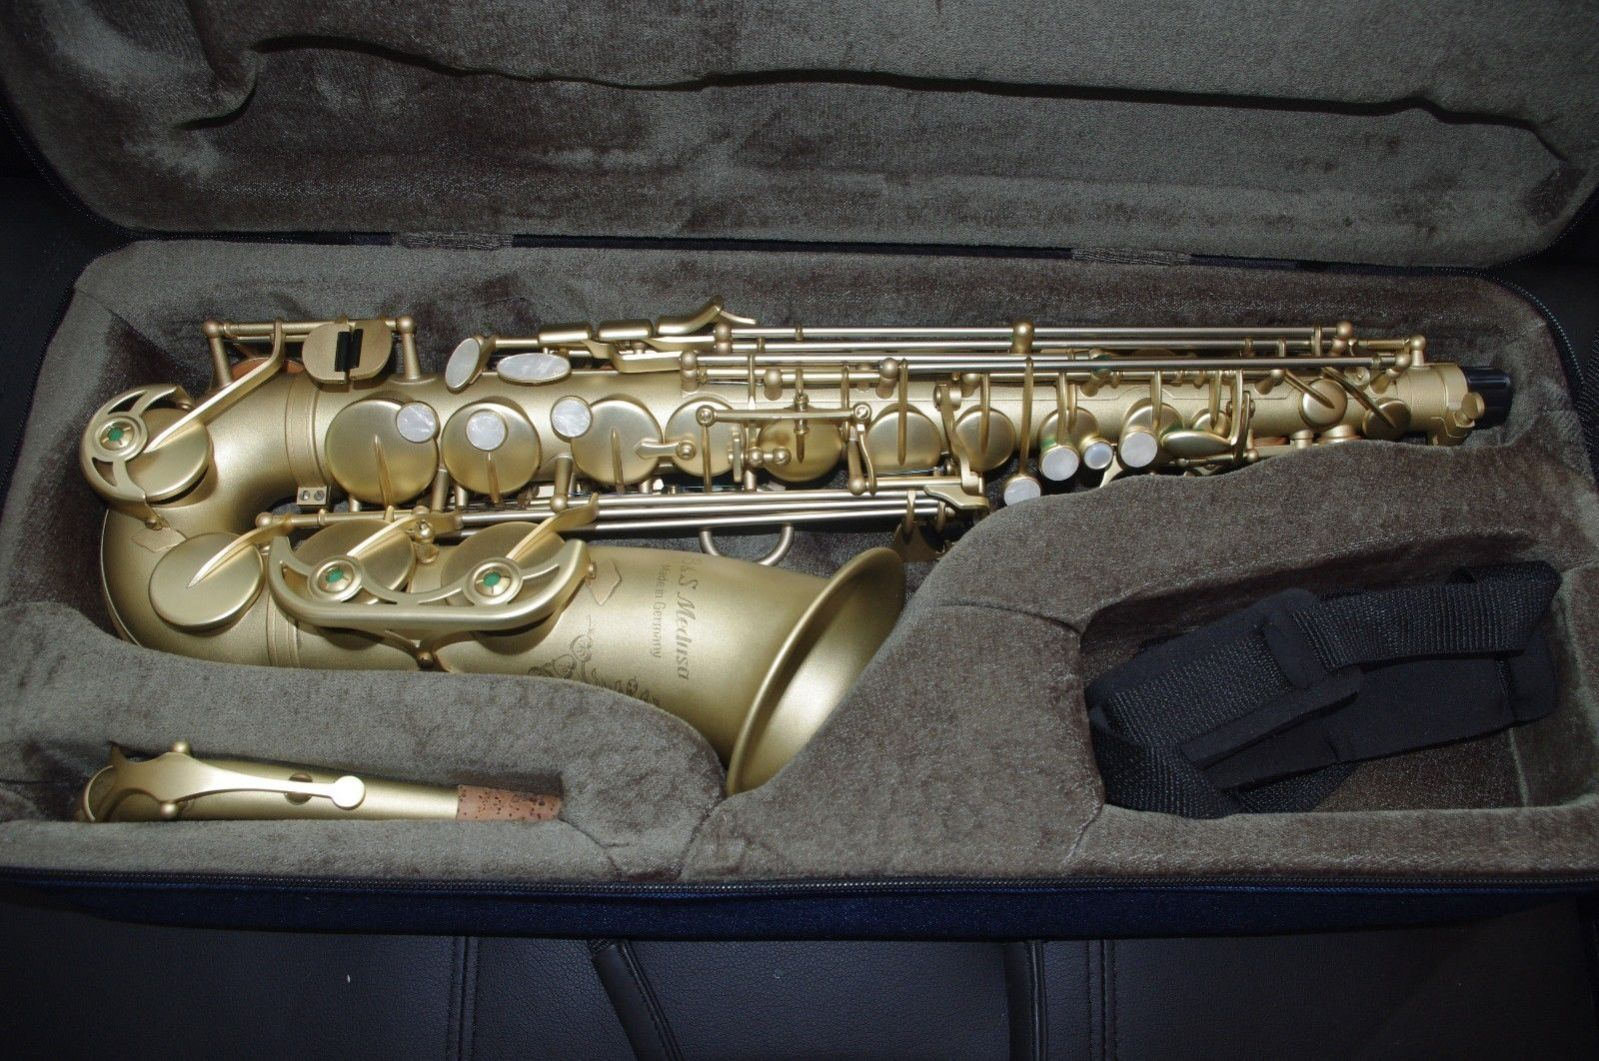 Series 2006 - Medusa, alto sax in case, sandblast finish, B&S Medusa alto saxophone